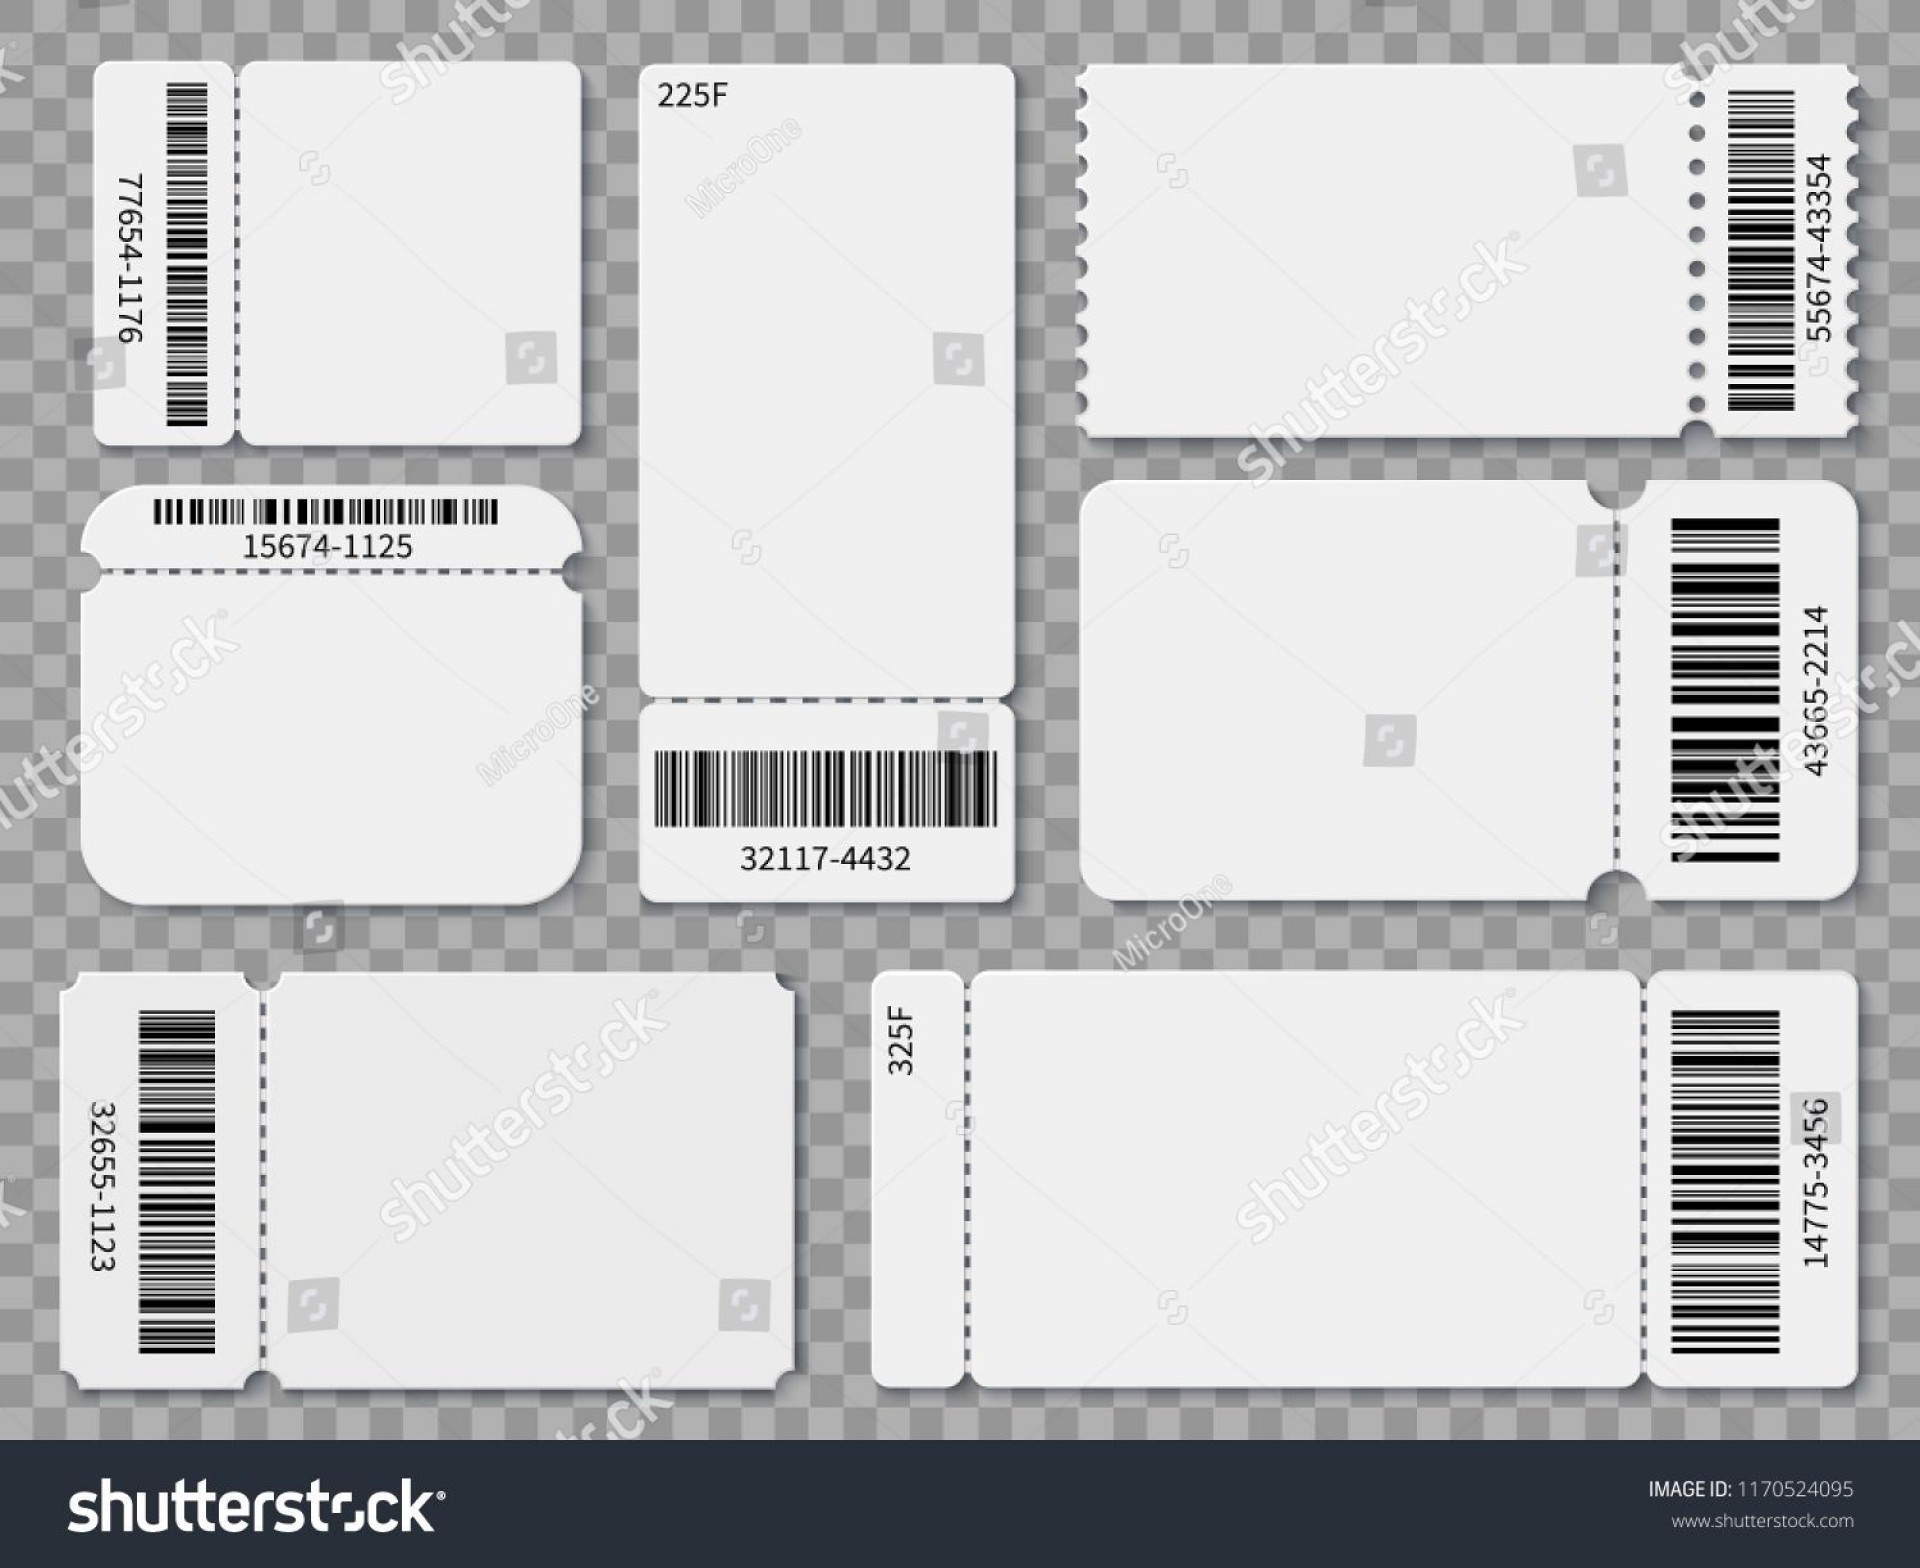 000 Singular Free Concert Ticket Printable High Resolution  Template For Gift1920